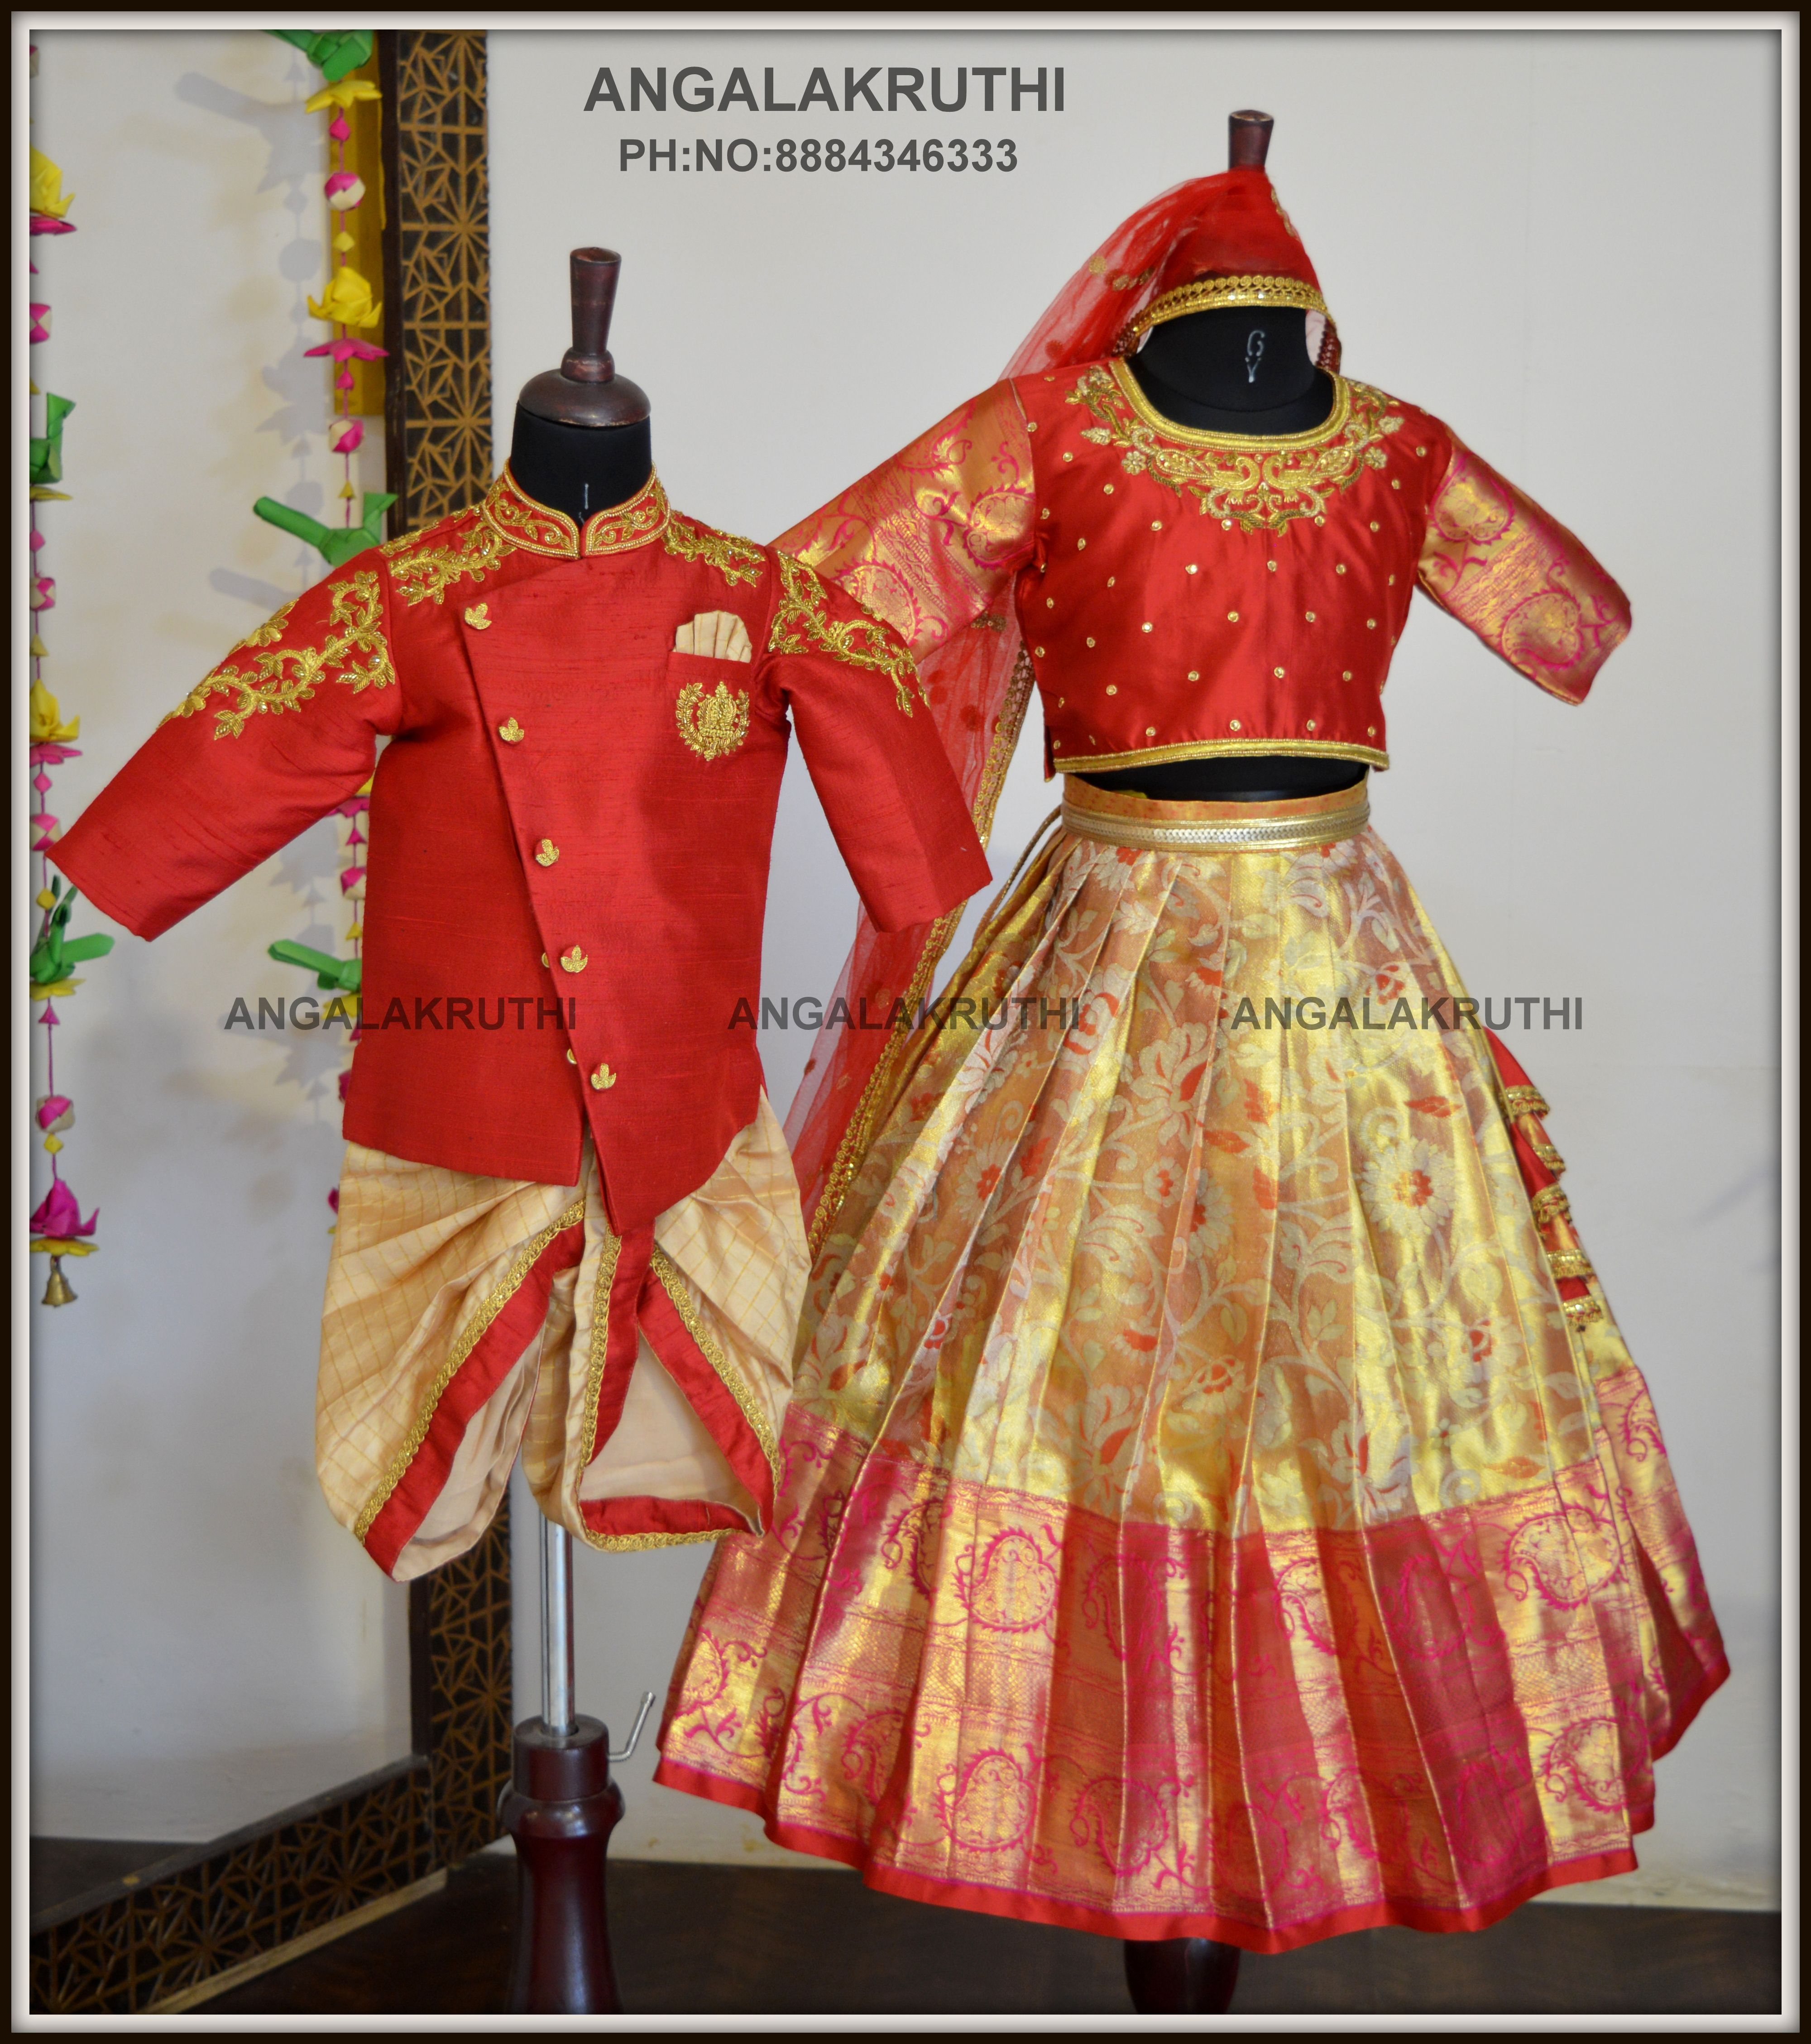 Brother And Sister Matching Dress Designs By Angalakruthi Bangalore Pure Silk Lehenga Blouse Designs In Bangalore Twi In 2020 Designer Dresses Matching Dresses Dresses